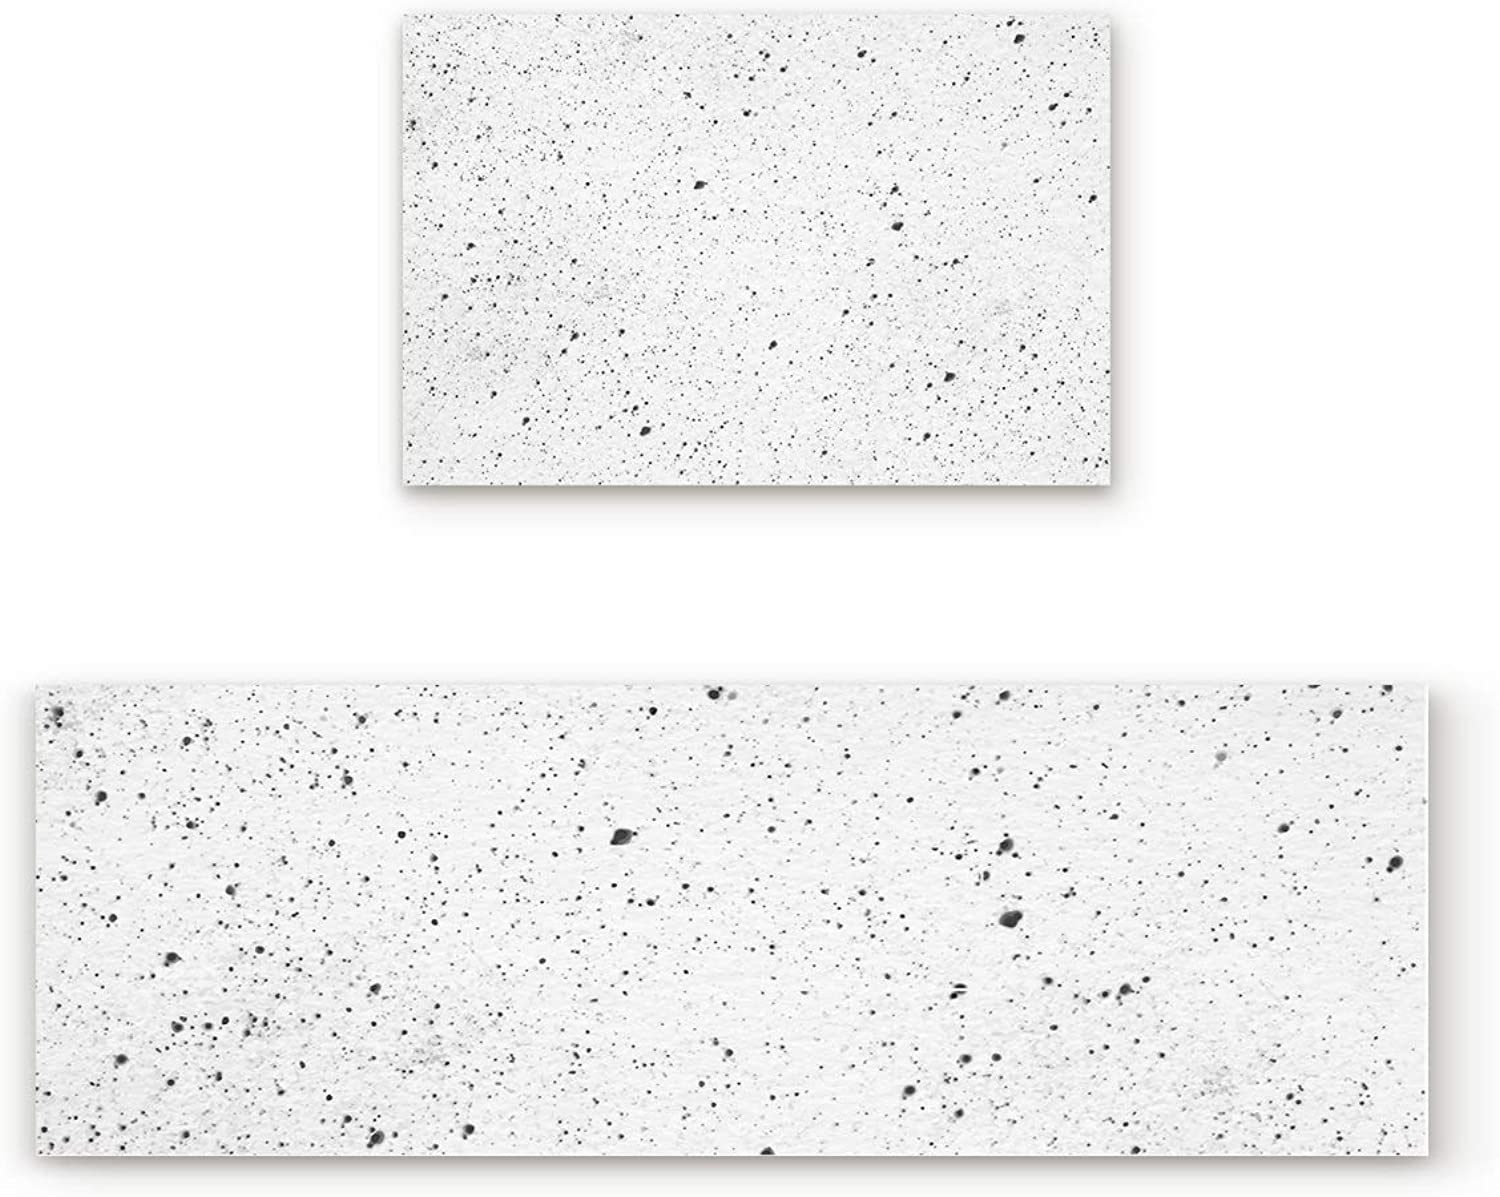 Aomike 2 Piece Non-Slip Kitchen Mat Rubber Backing Doormat Black and White Marbling Runner Rug Set, Hallway Living Room Balcony Bathroom Carpet Sets (19.7  x 31.5 +19.7  x 47.2 )